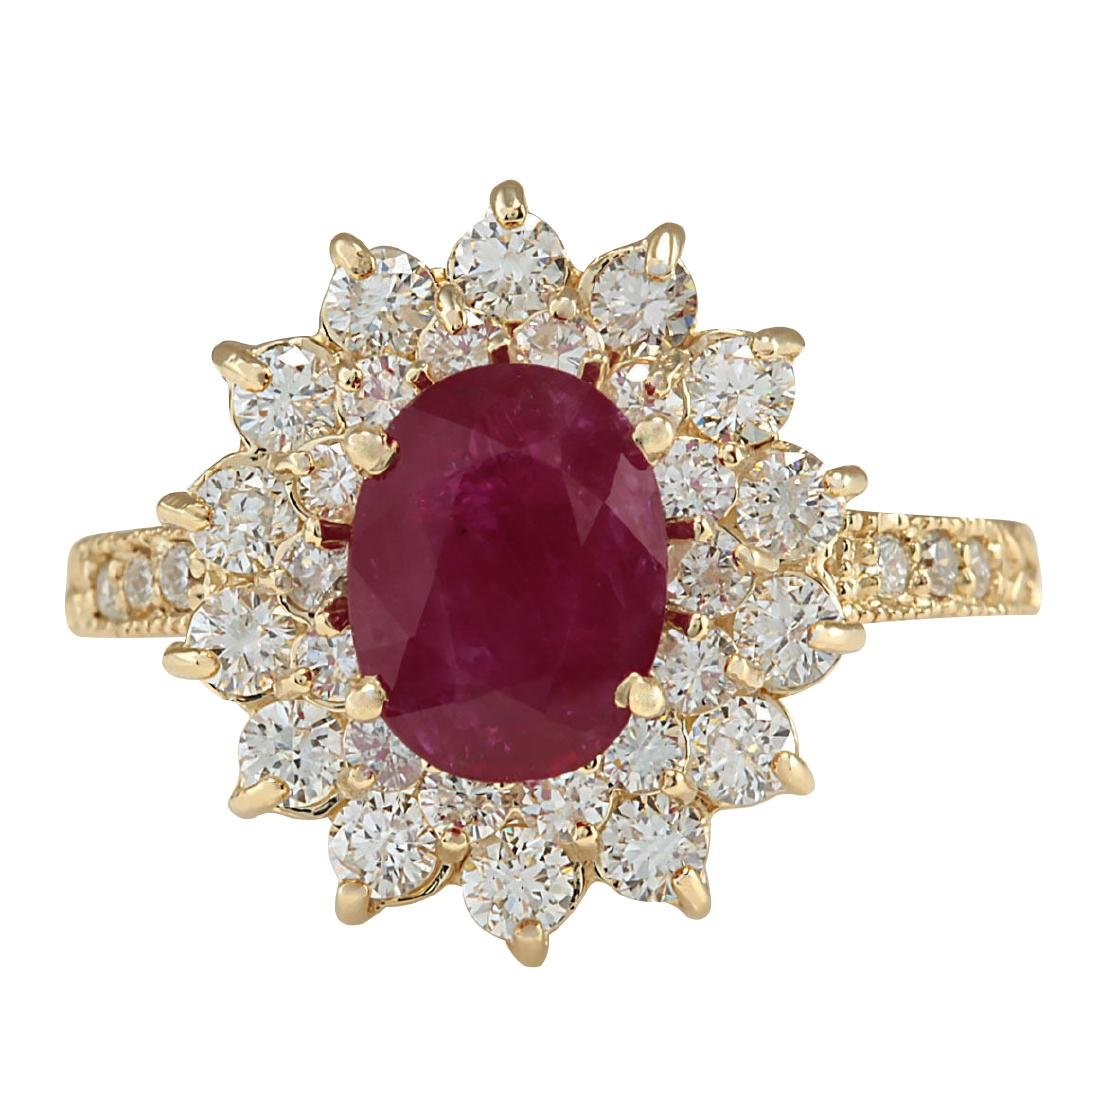 3.28CTW Natural Ruby And Diamond Ring In 18K Yellow